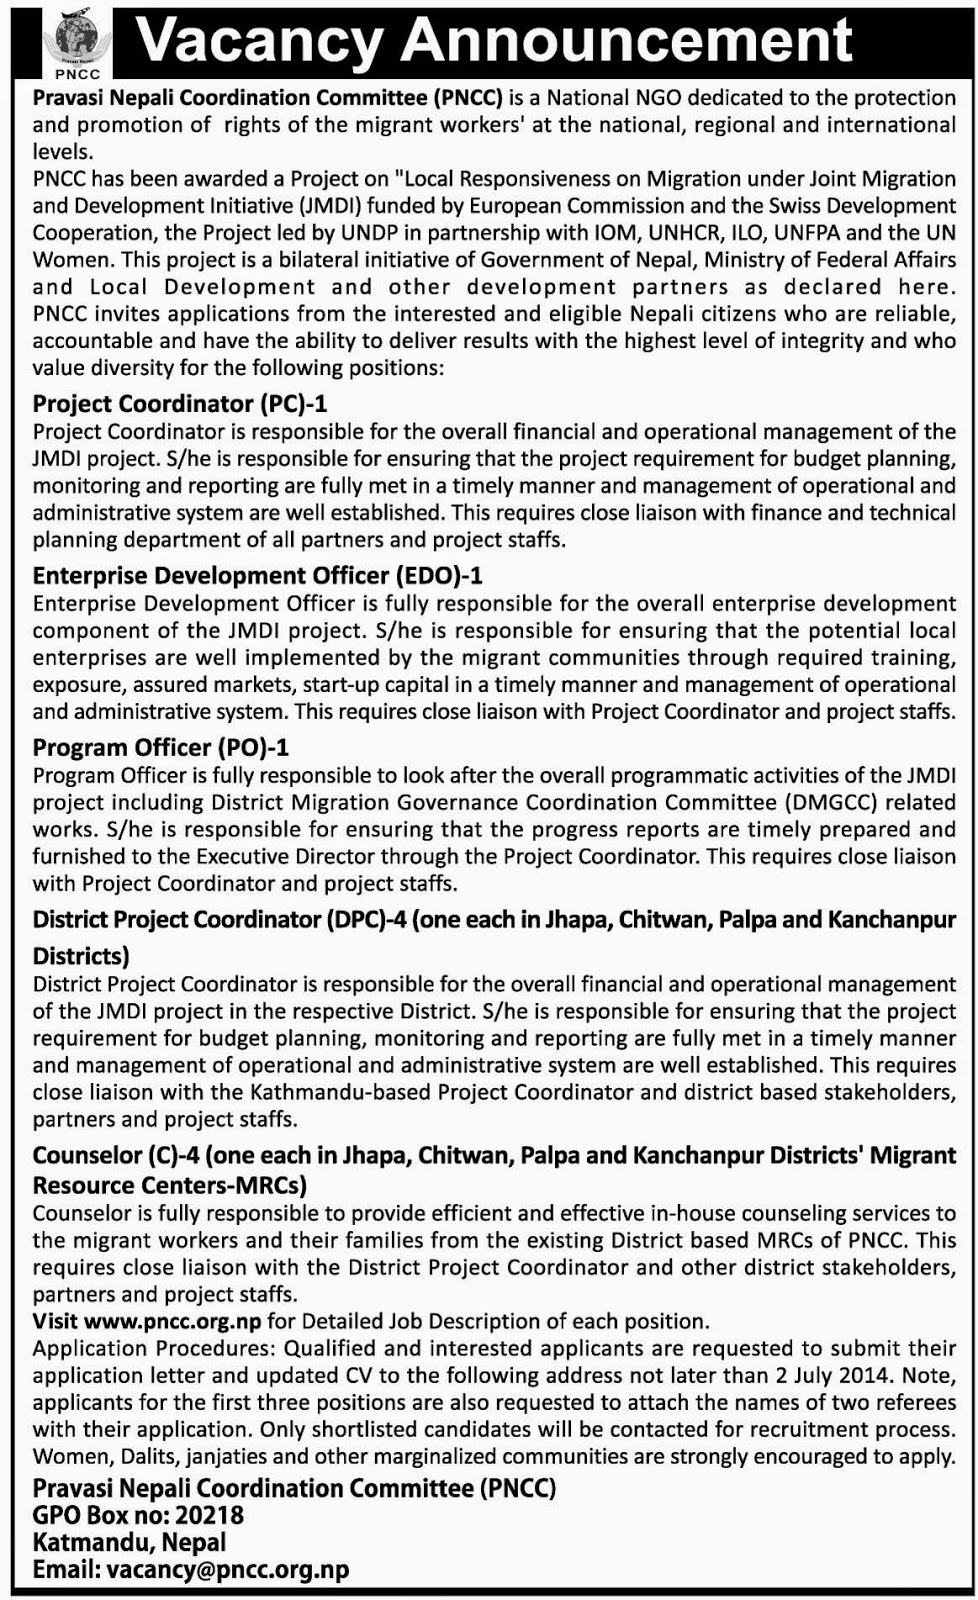 Vacancy announcement from Pravasi Nepali Coordination Committee (PNCC